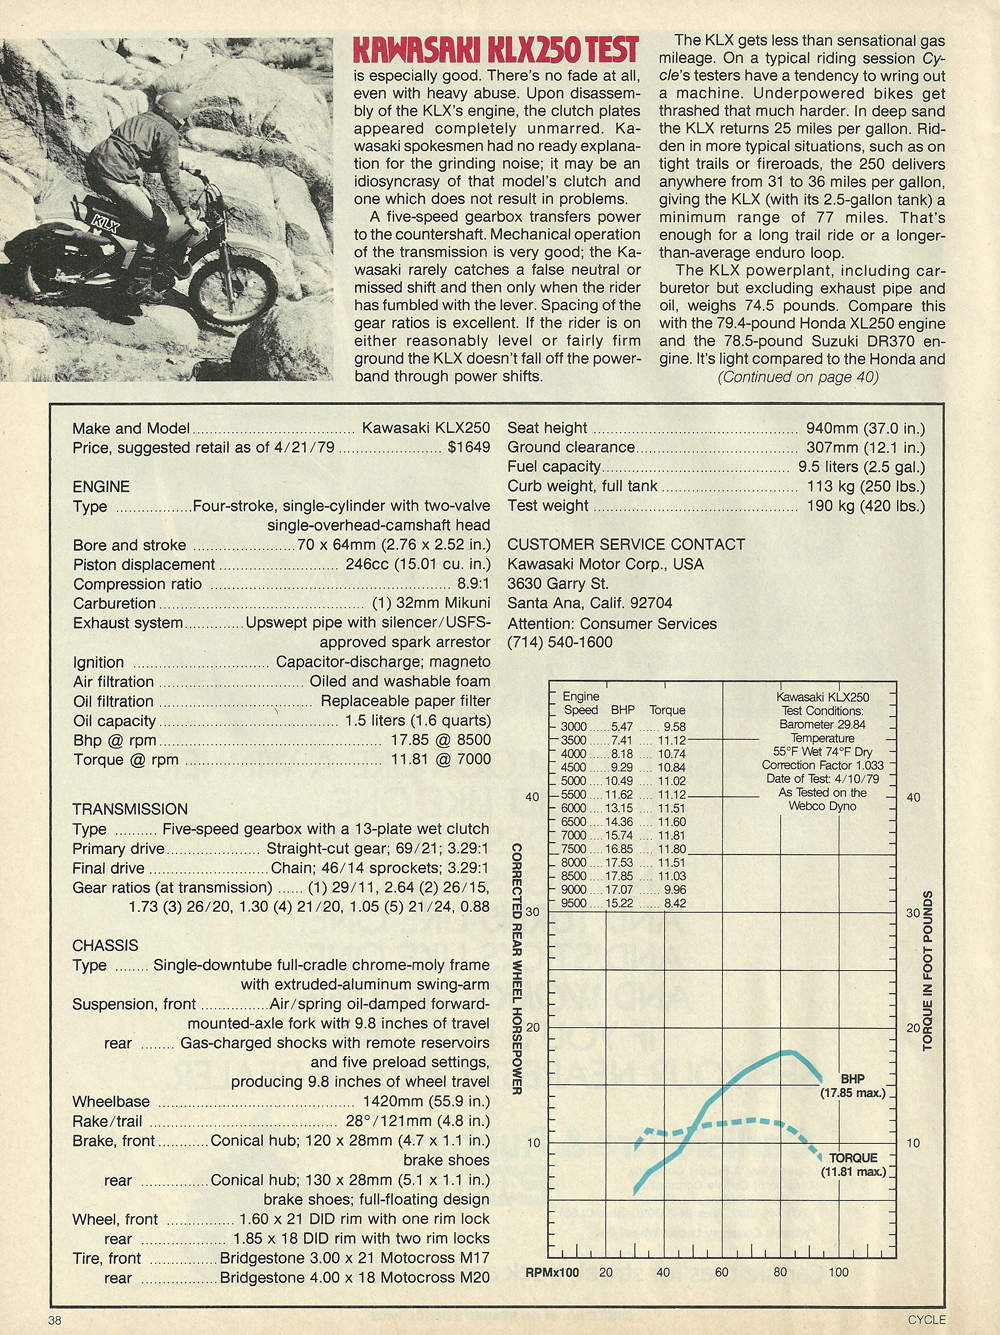 1979 Kawasaki KLX250 off road test 8.jpg